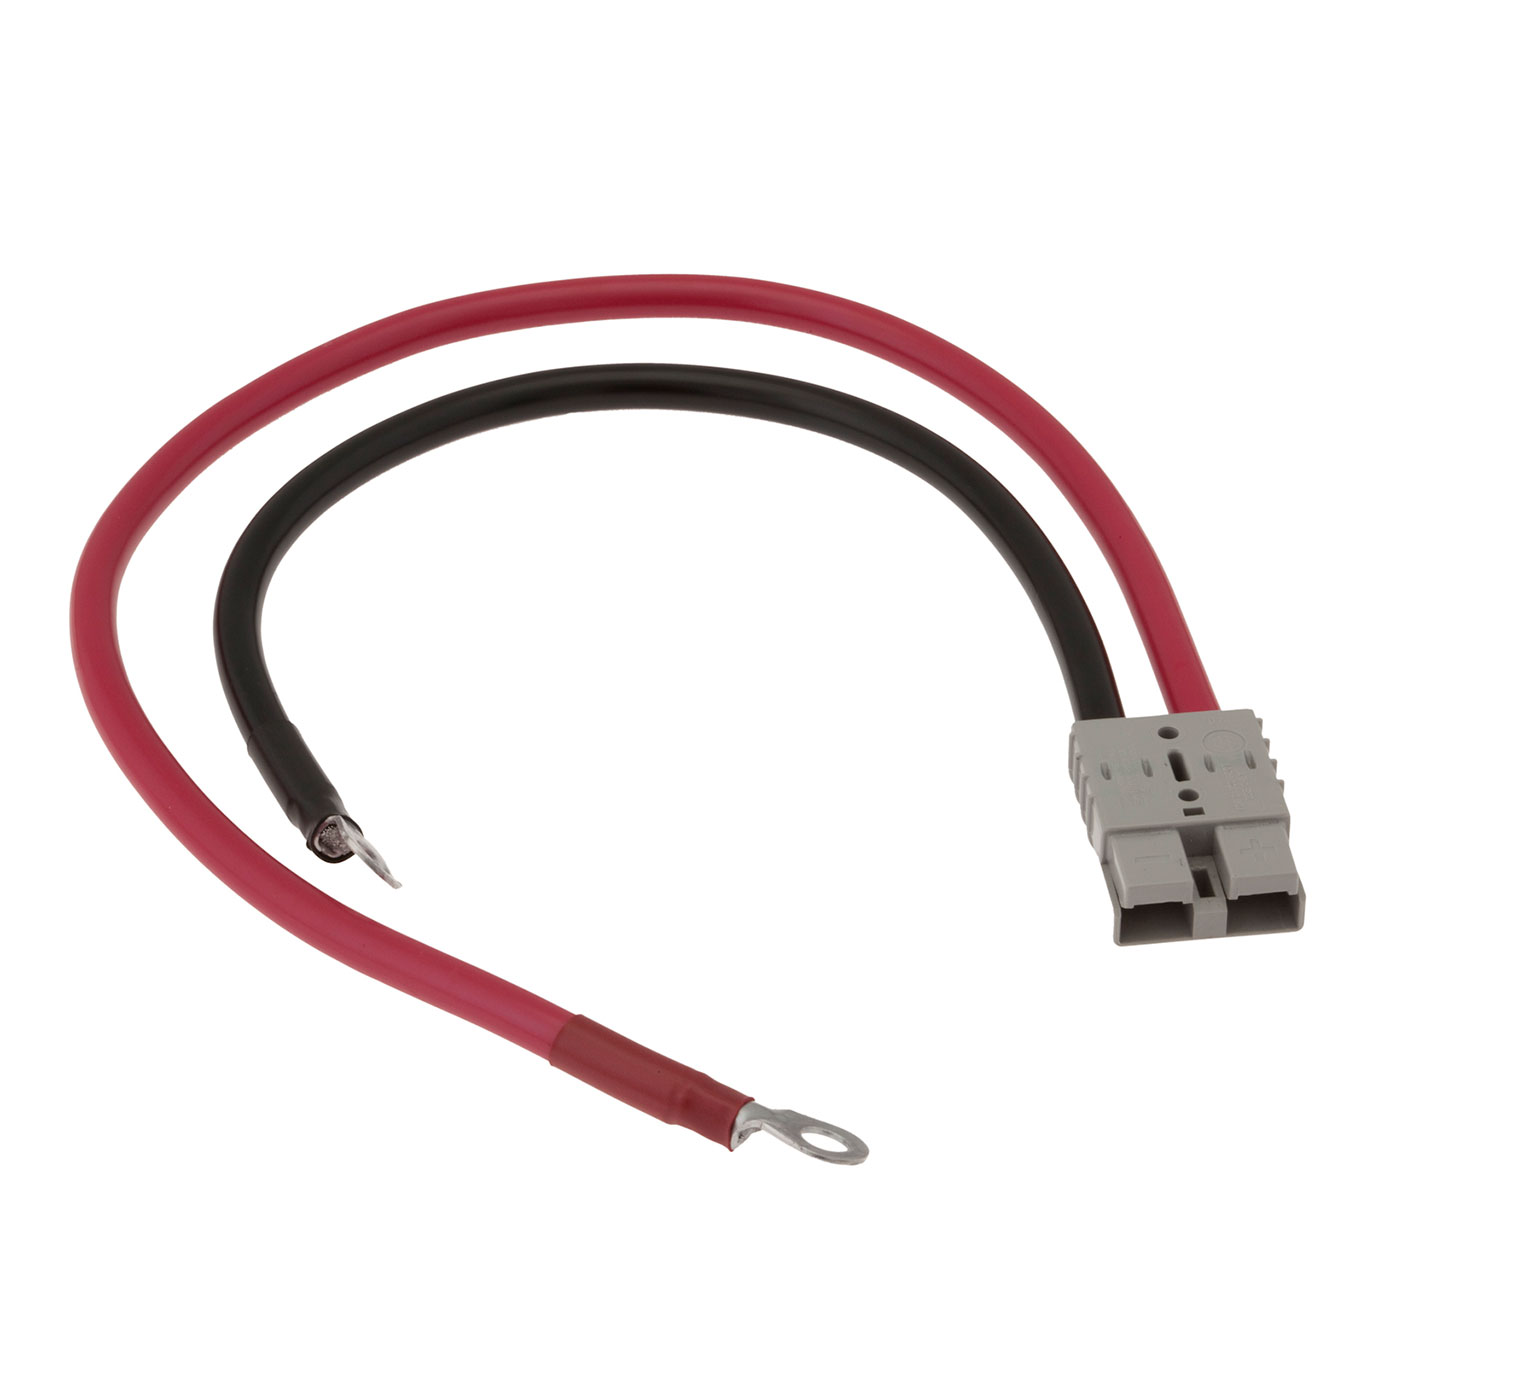 222217 Cable Assembly - 25.5 in alt 1